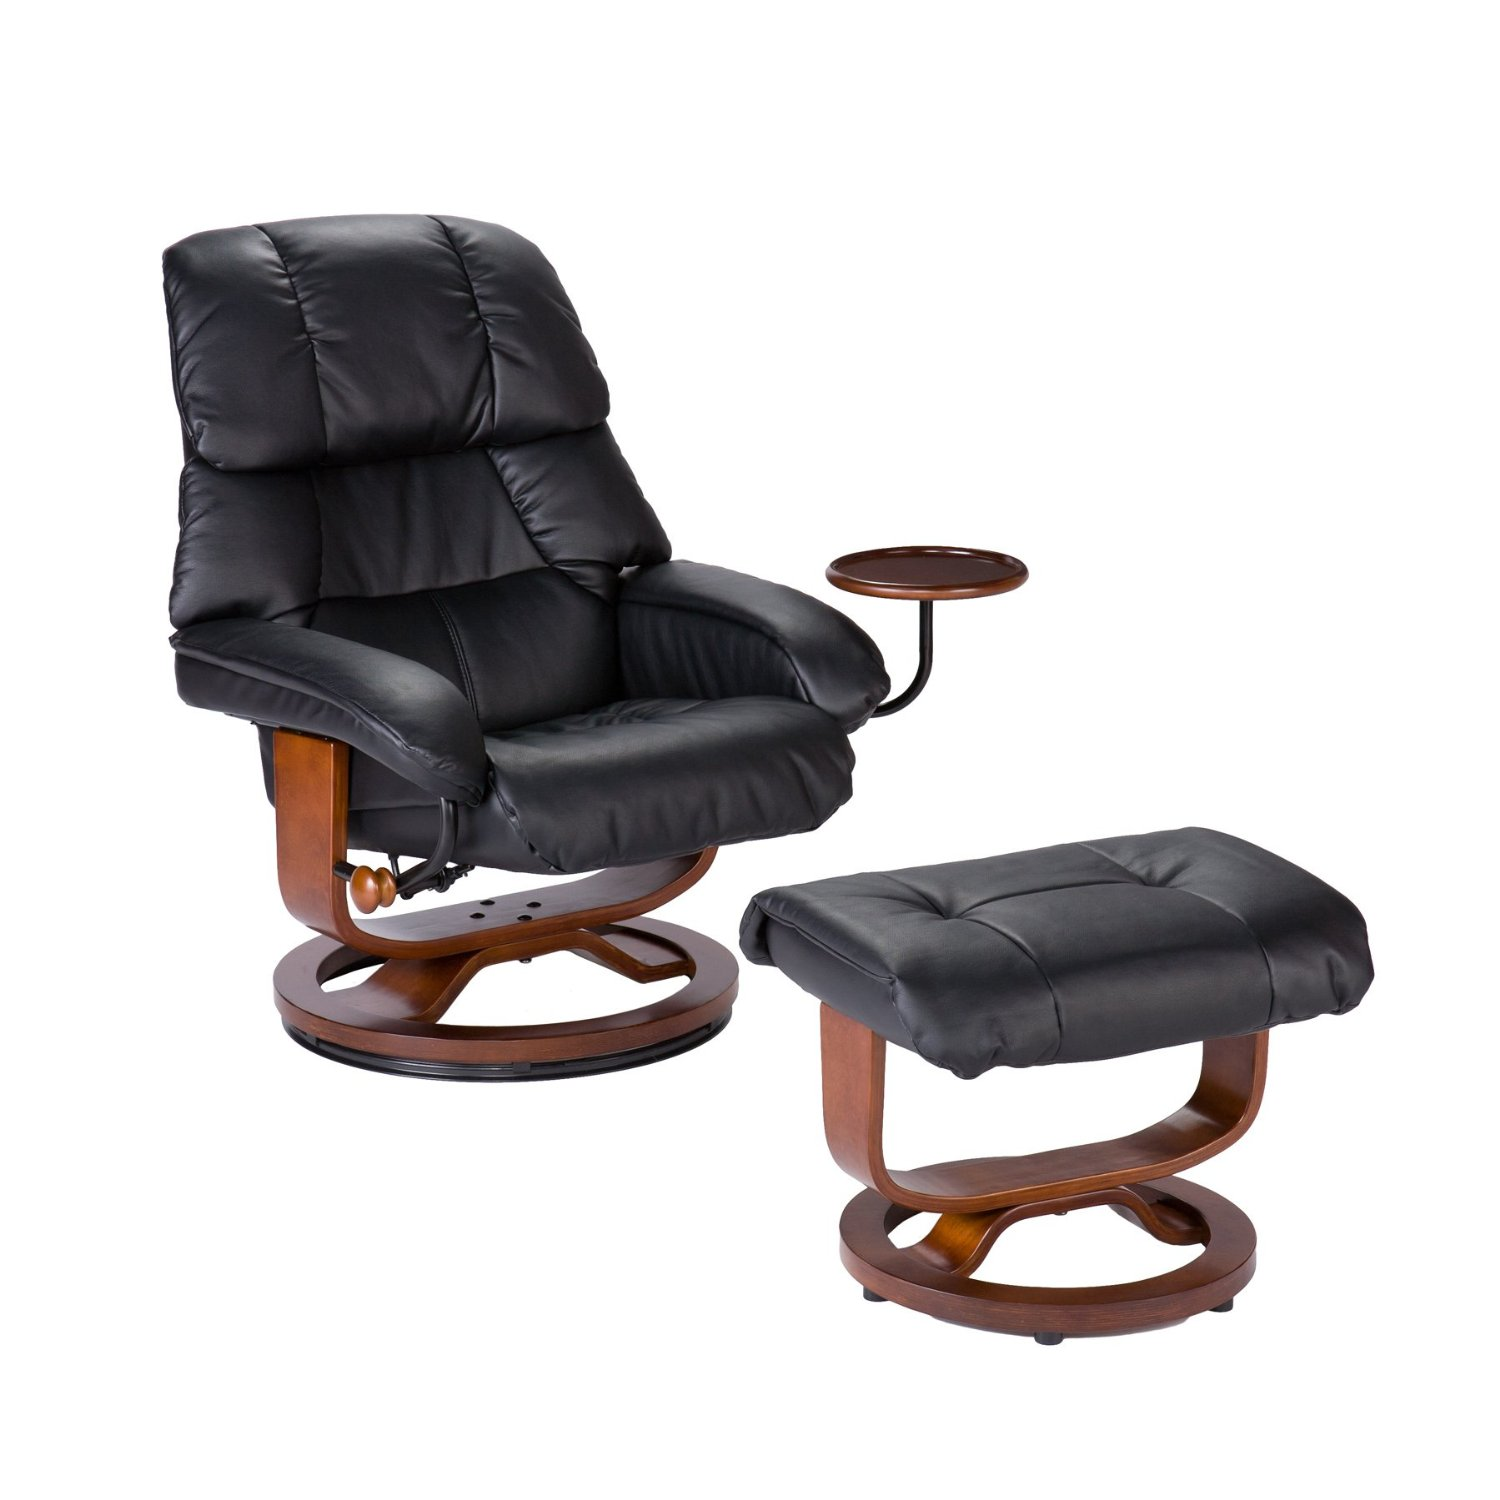 Southern Enterprises High Back Leather Recliner and Ottoman, Black1